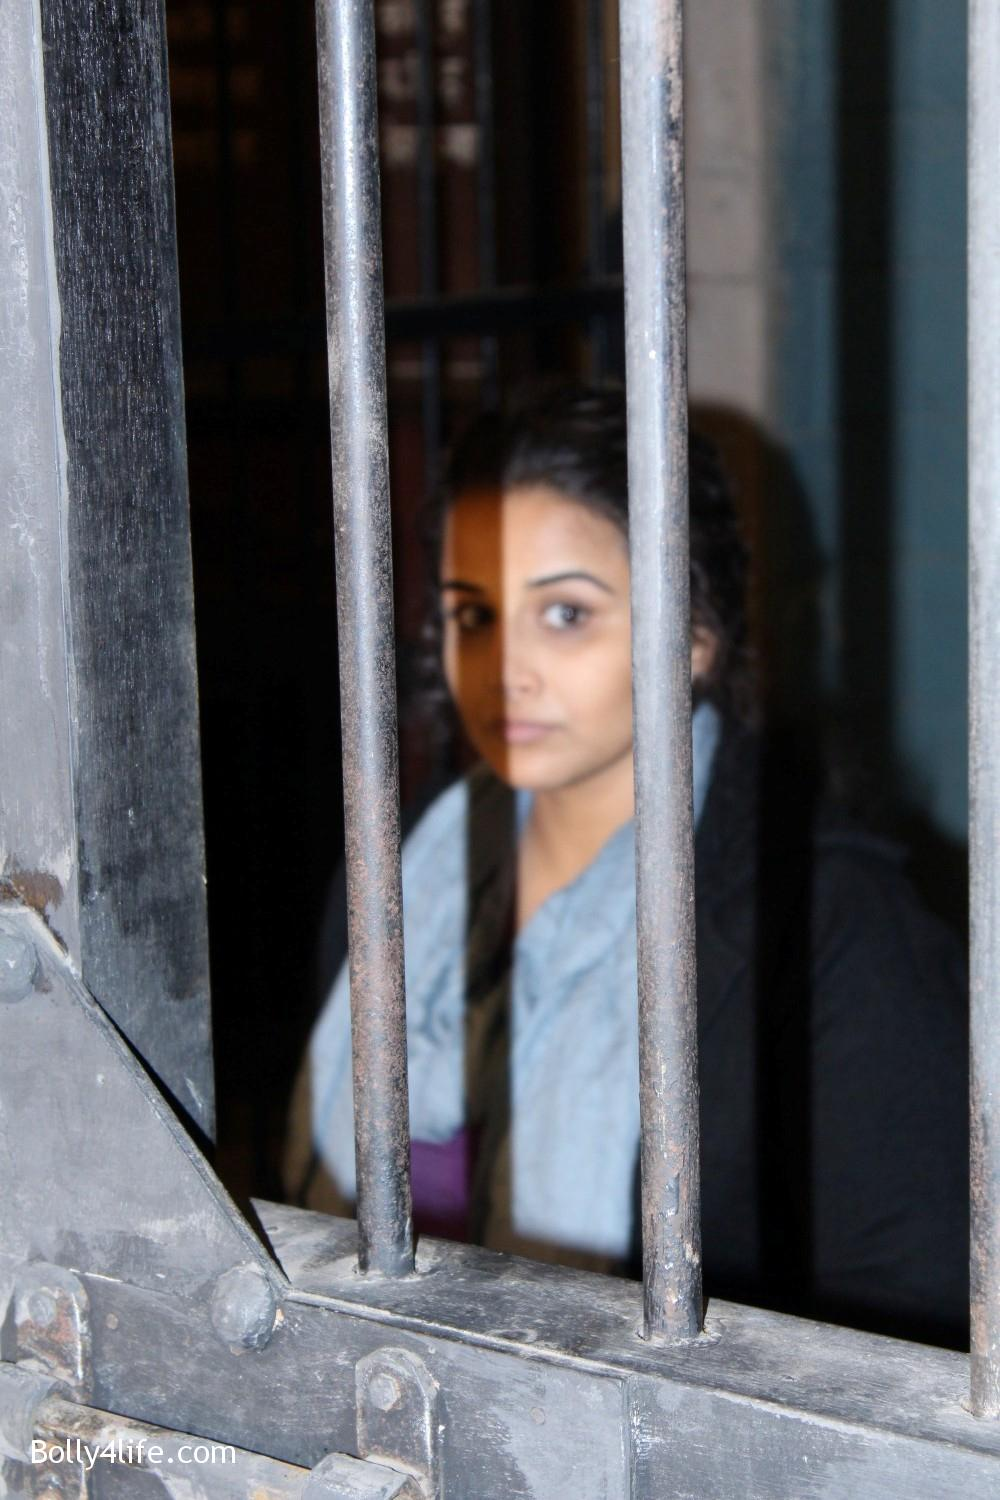 Vidya-Balan-during-the-Interview-for-film-Kahaani-2-3.jpg